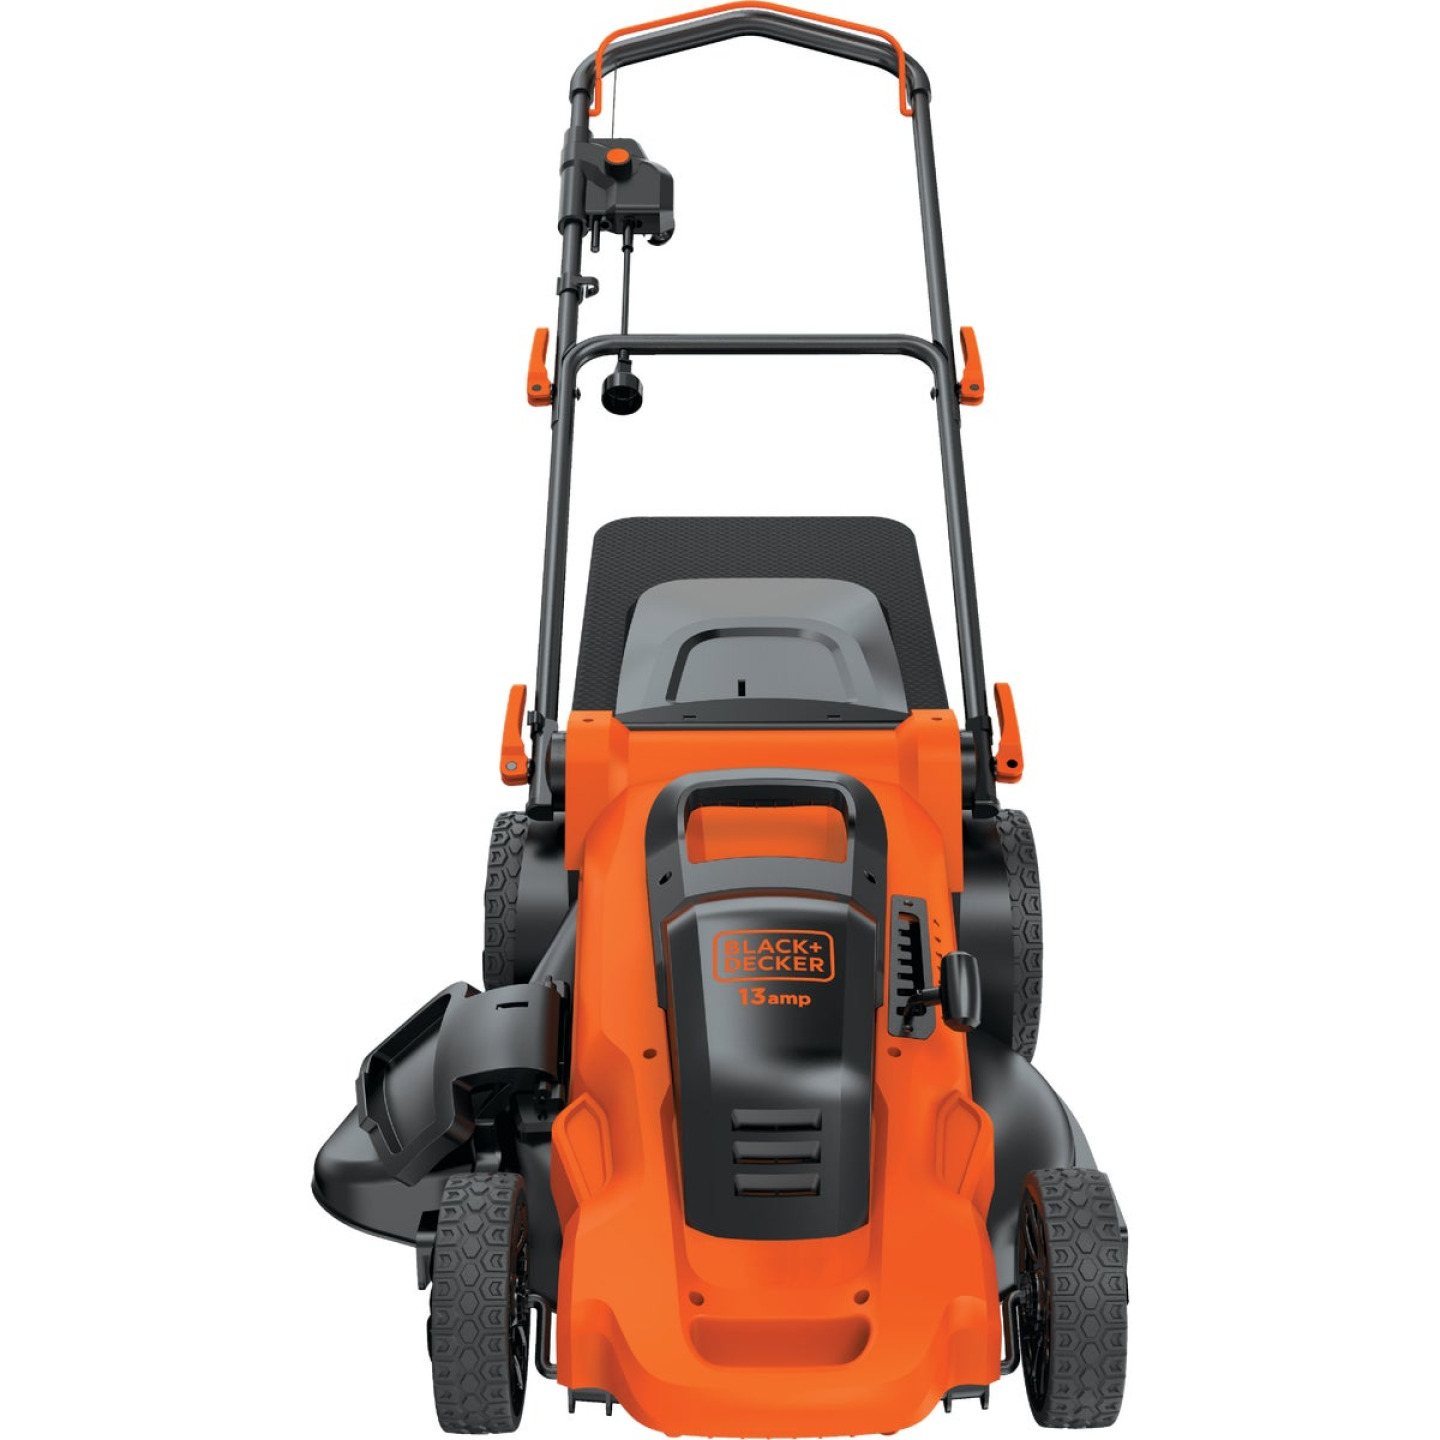 Black & Decker 20 In. 13A Push Electric Lawn Mower Image 9